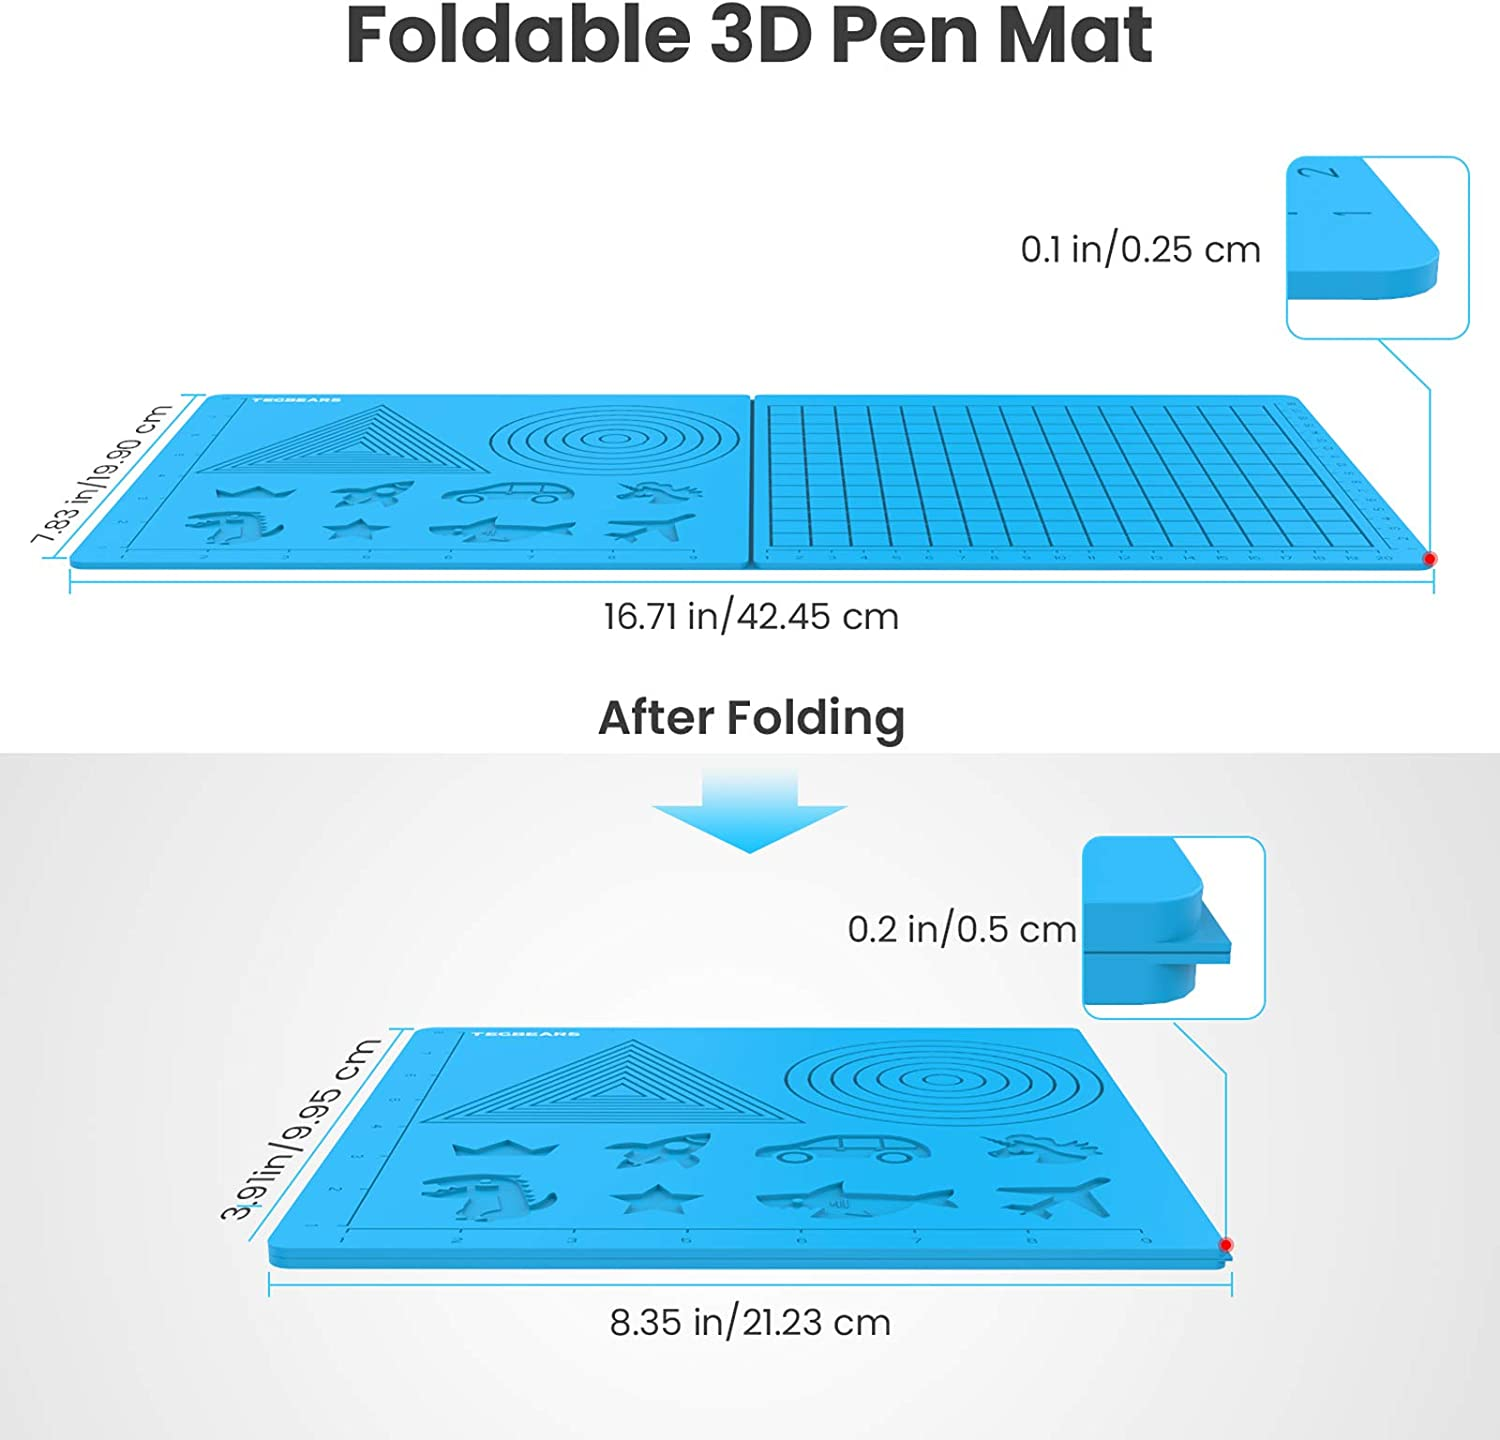 Great Tools for 3D Beginners//Kids Silicone 3D Pen Drawing Mat with 4 Finger Caps Rich Cartoon Patterns and Geometry Figures Enrich Your Creations Tecbears 3D Printing Pen Mat